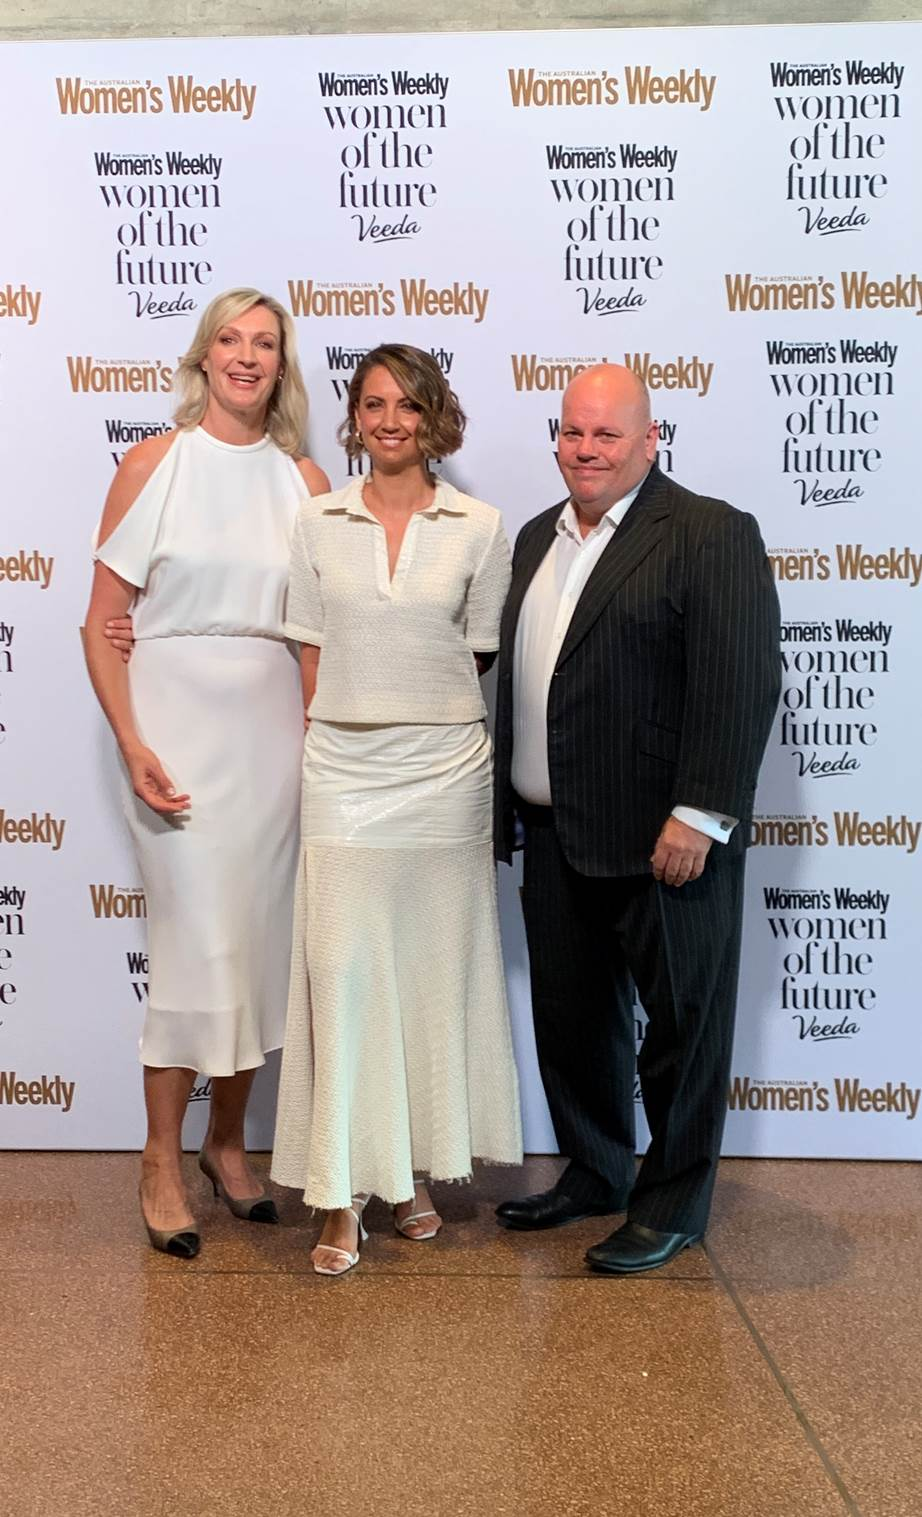 Women's Weekly Editor-In-Chief Nicole Byers, the event MC and TV icon Brooke Boney and Veeda CEO Adrian Forsyth share a red carpet snap.